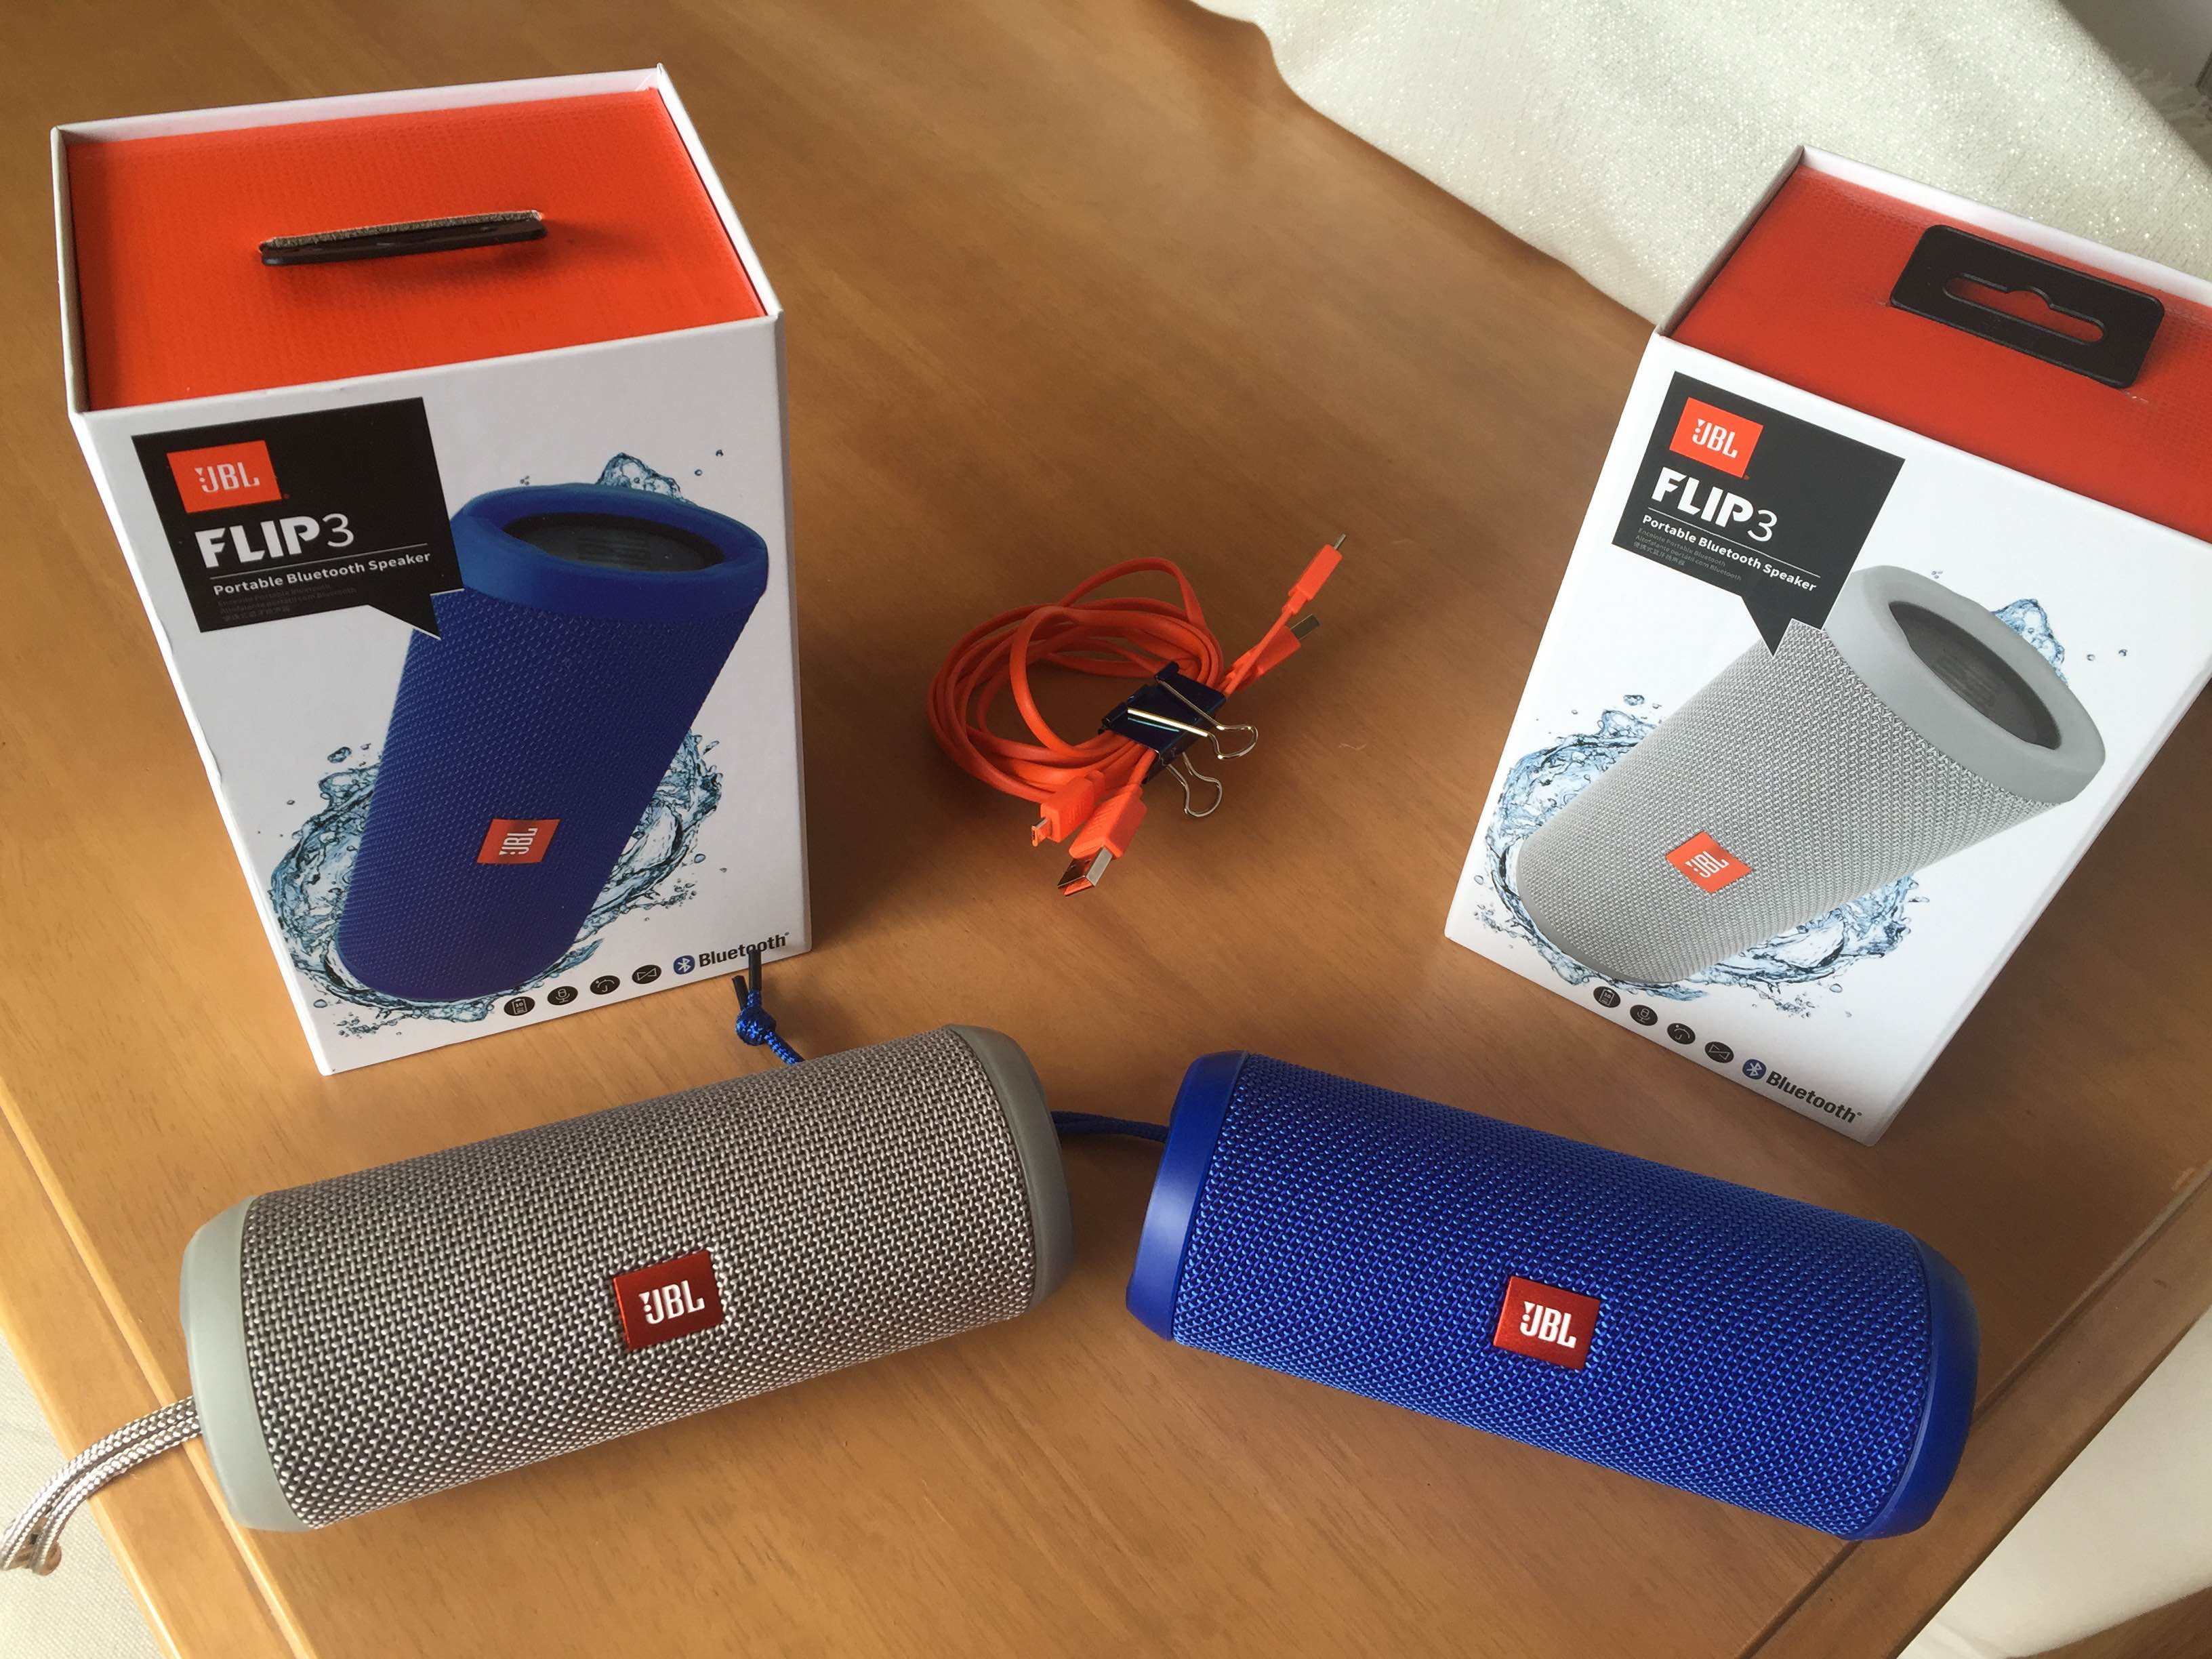 Review: Choosing a Portable Bluetooth Speaker